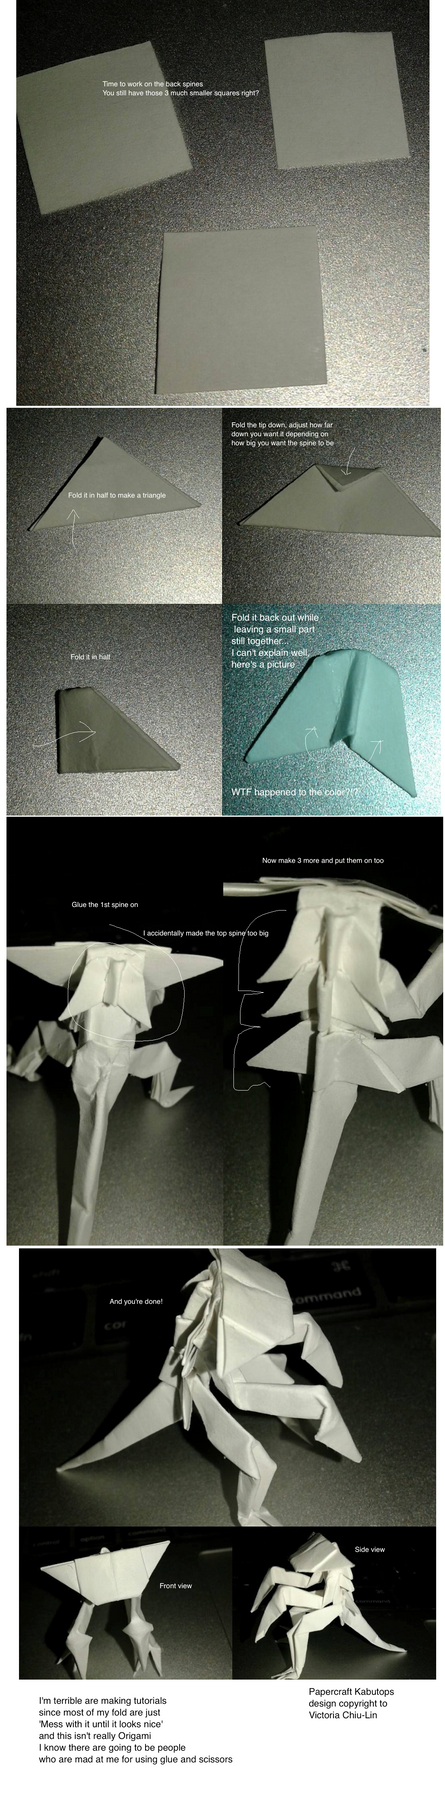 Papercraft Kabutops tutorial 4 by okamitsuki